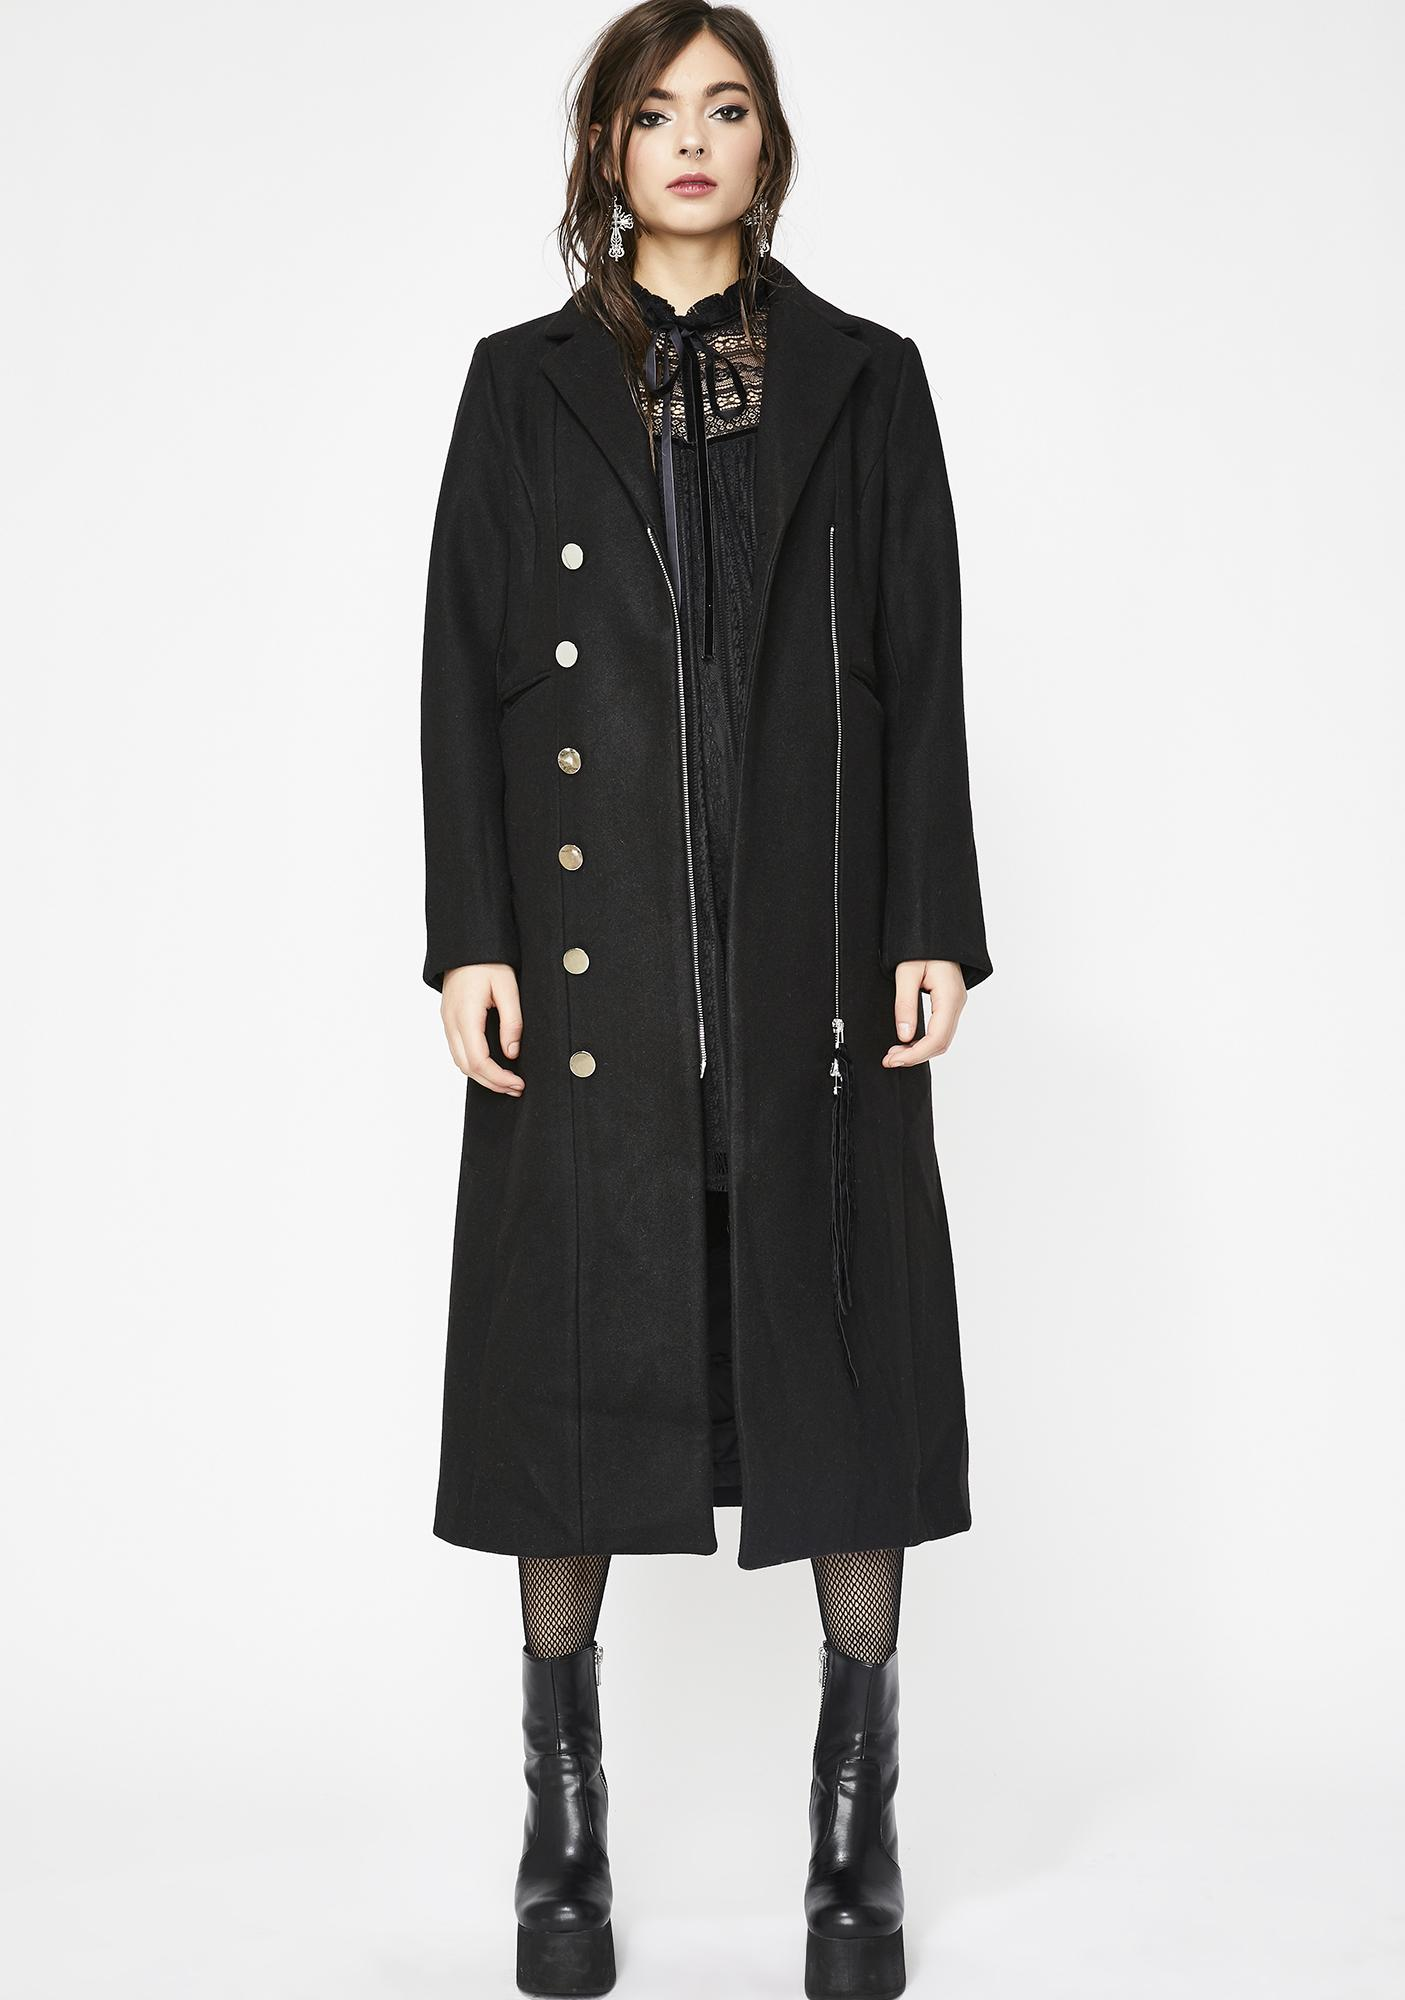 La Divina Asymmetrical Coat